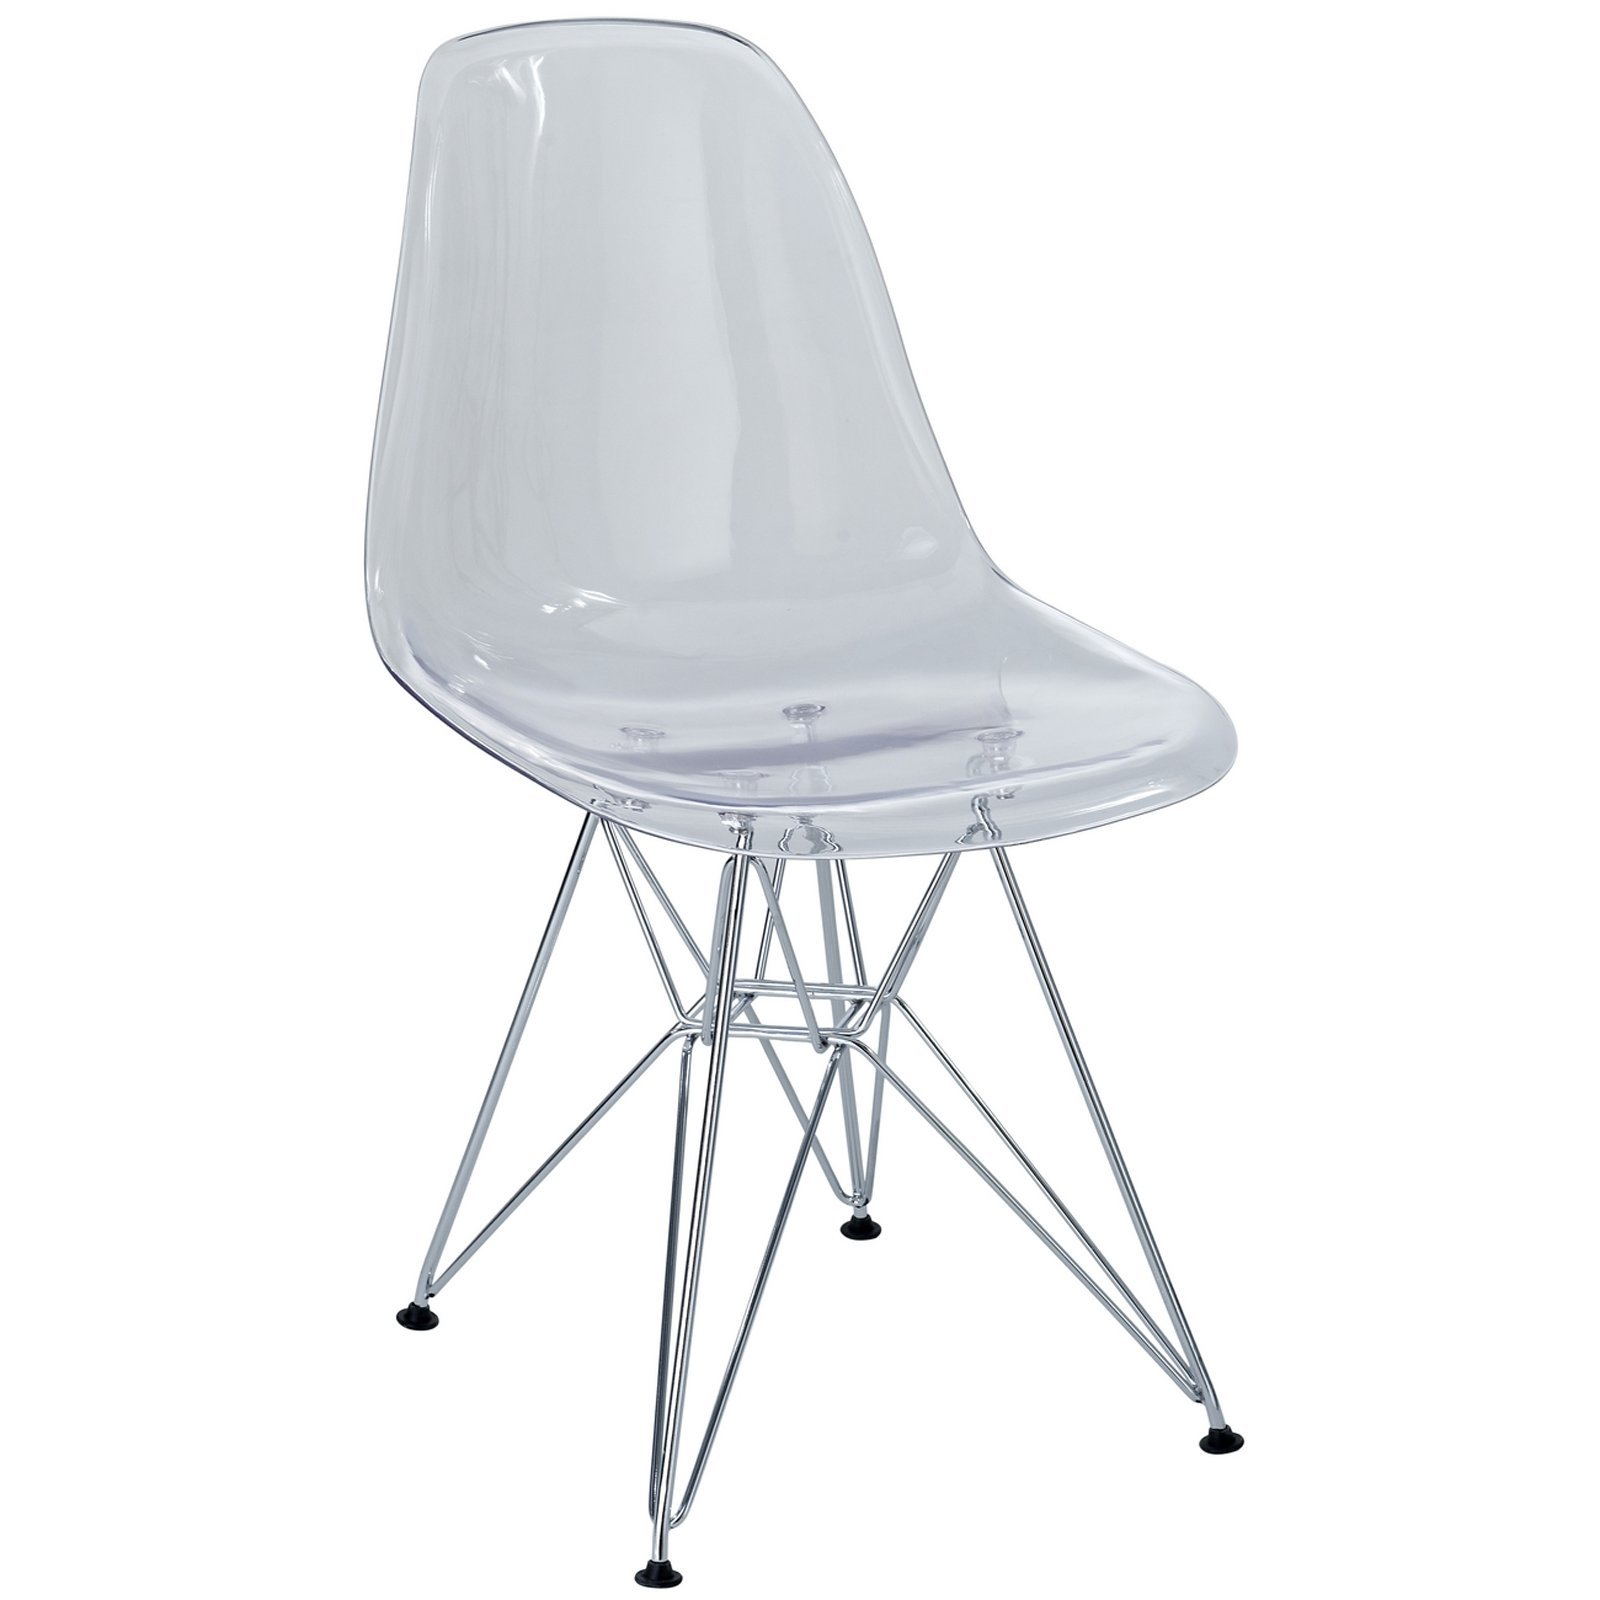 Modway Plastic Side Chair in Clear with Wire Base by Modway (Image #1)